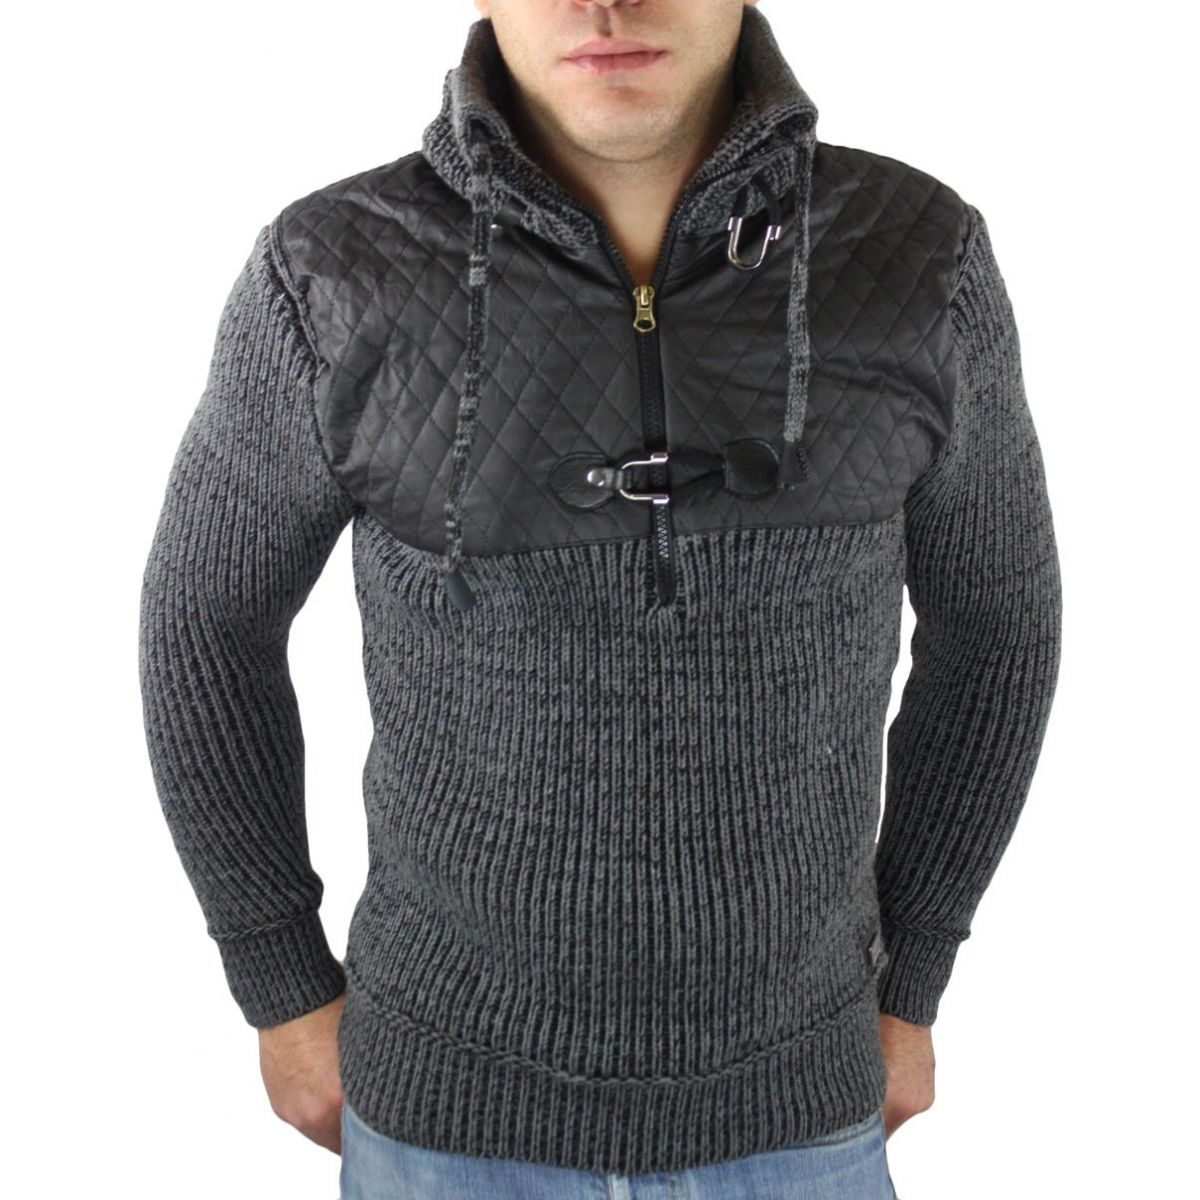 Veste Homme Fashion Grand Col